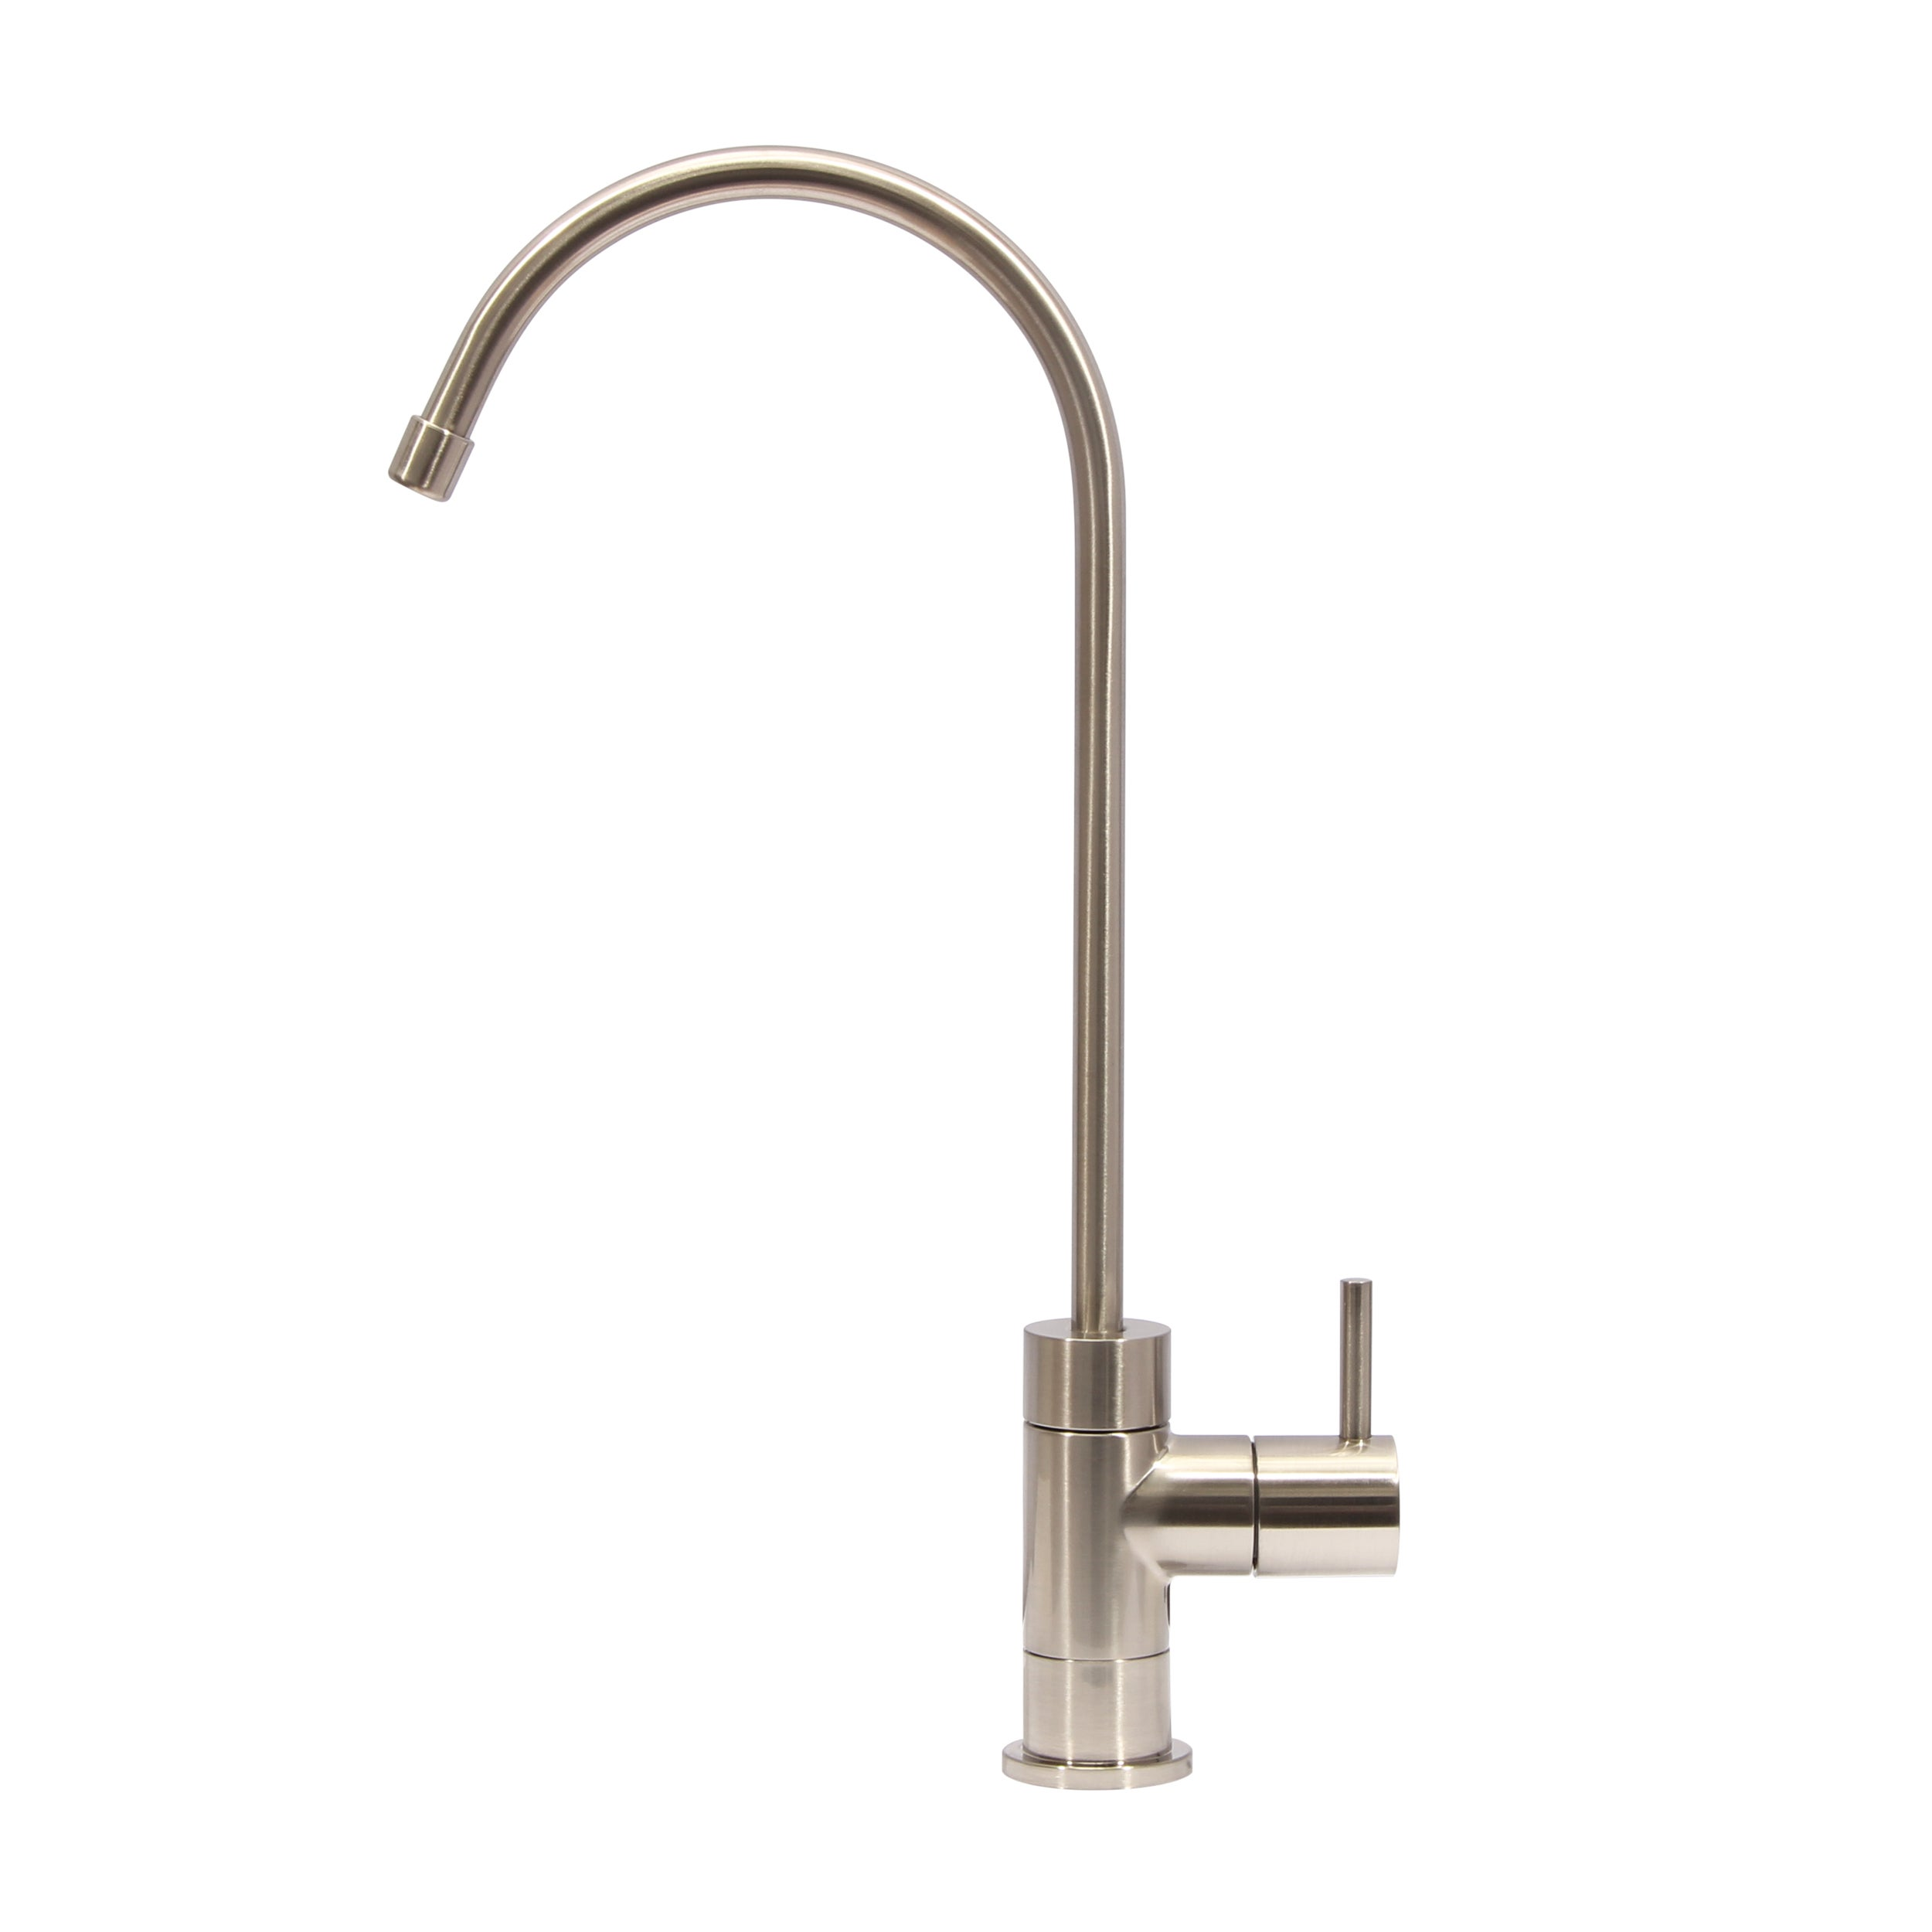 com sink drinking stainless kitchen alfi water kitchenzo new filter brand faucets solid unique faucet steel of